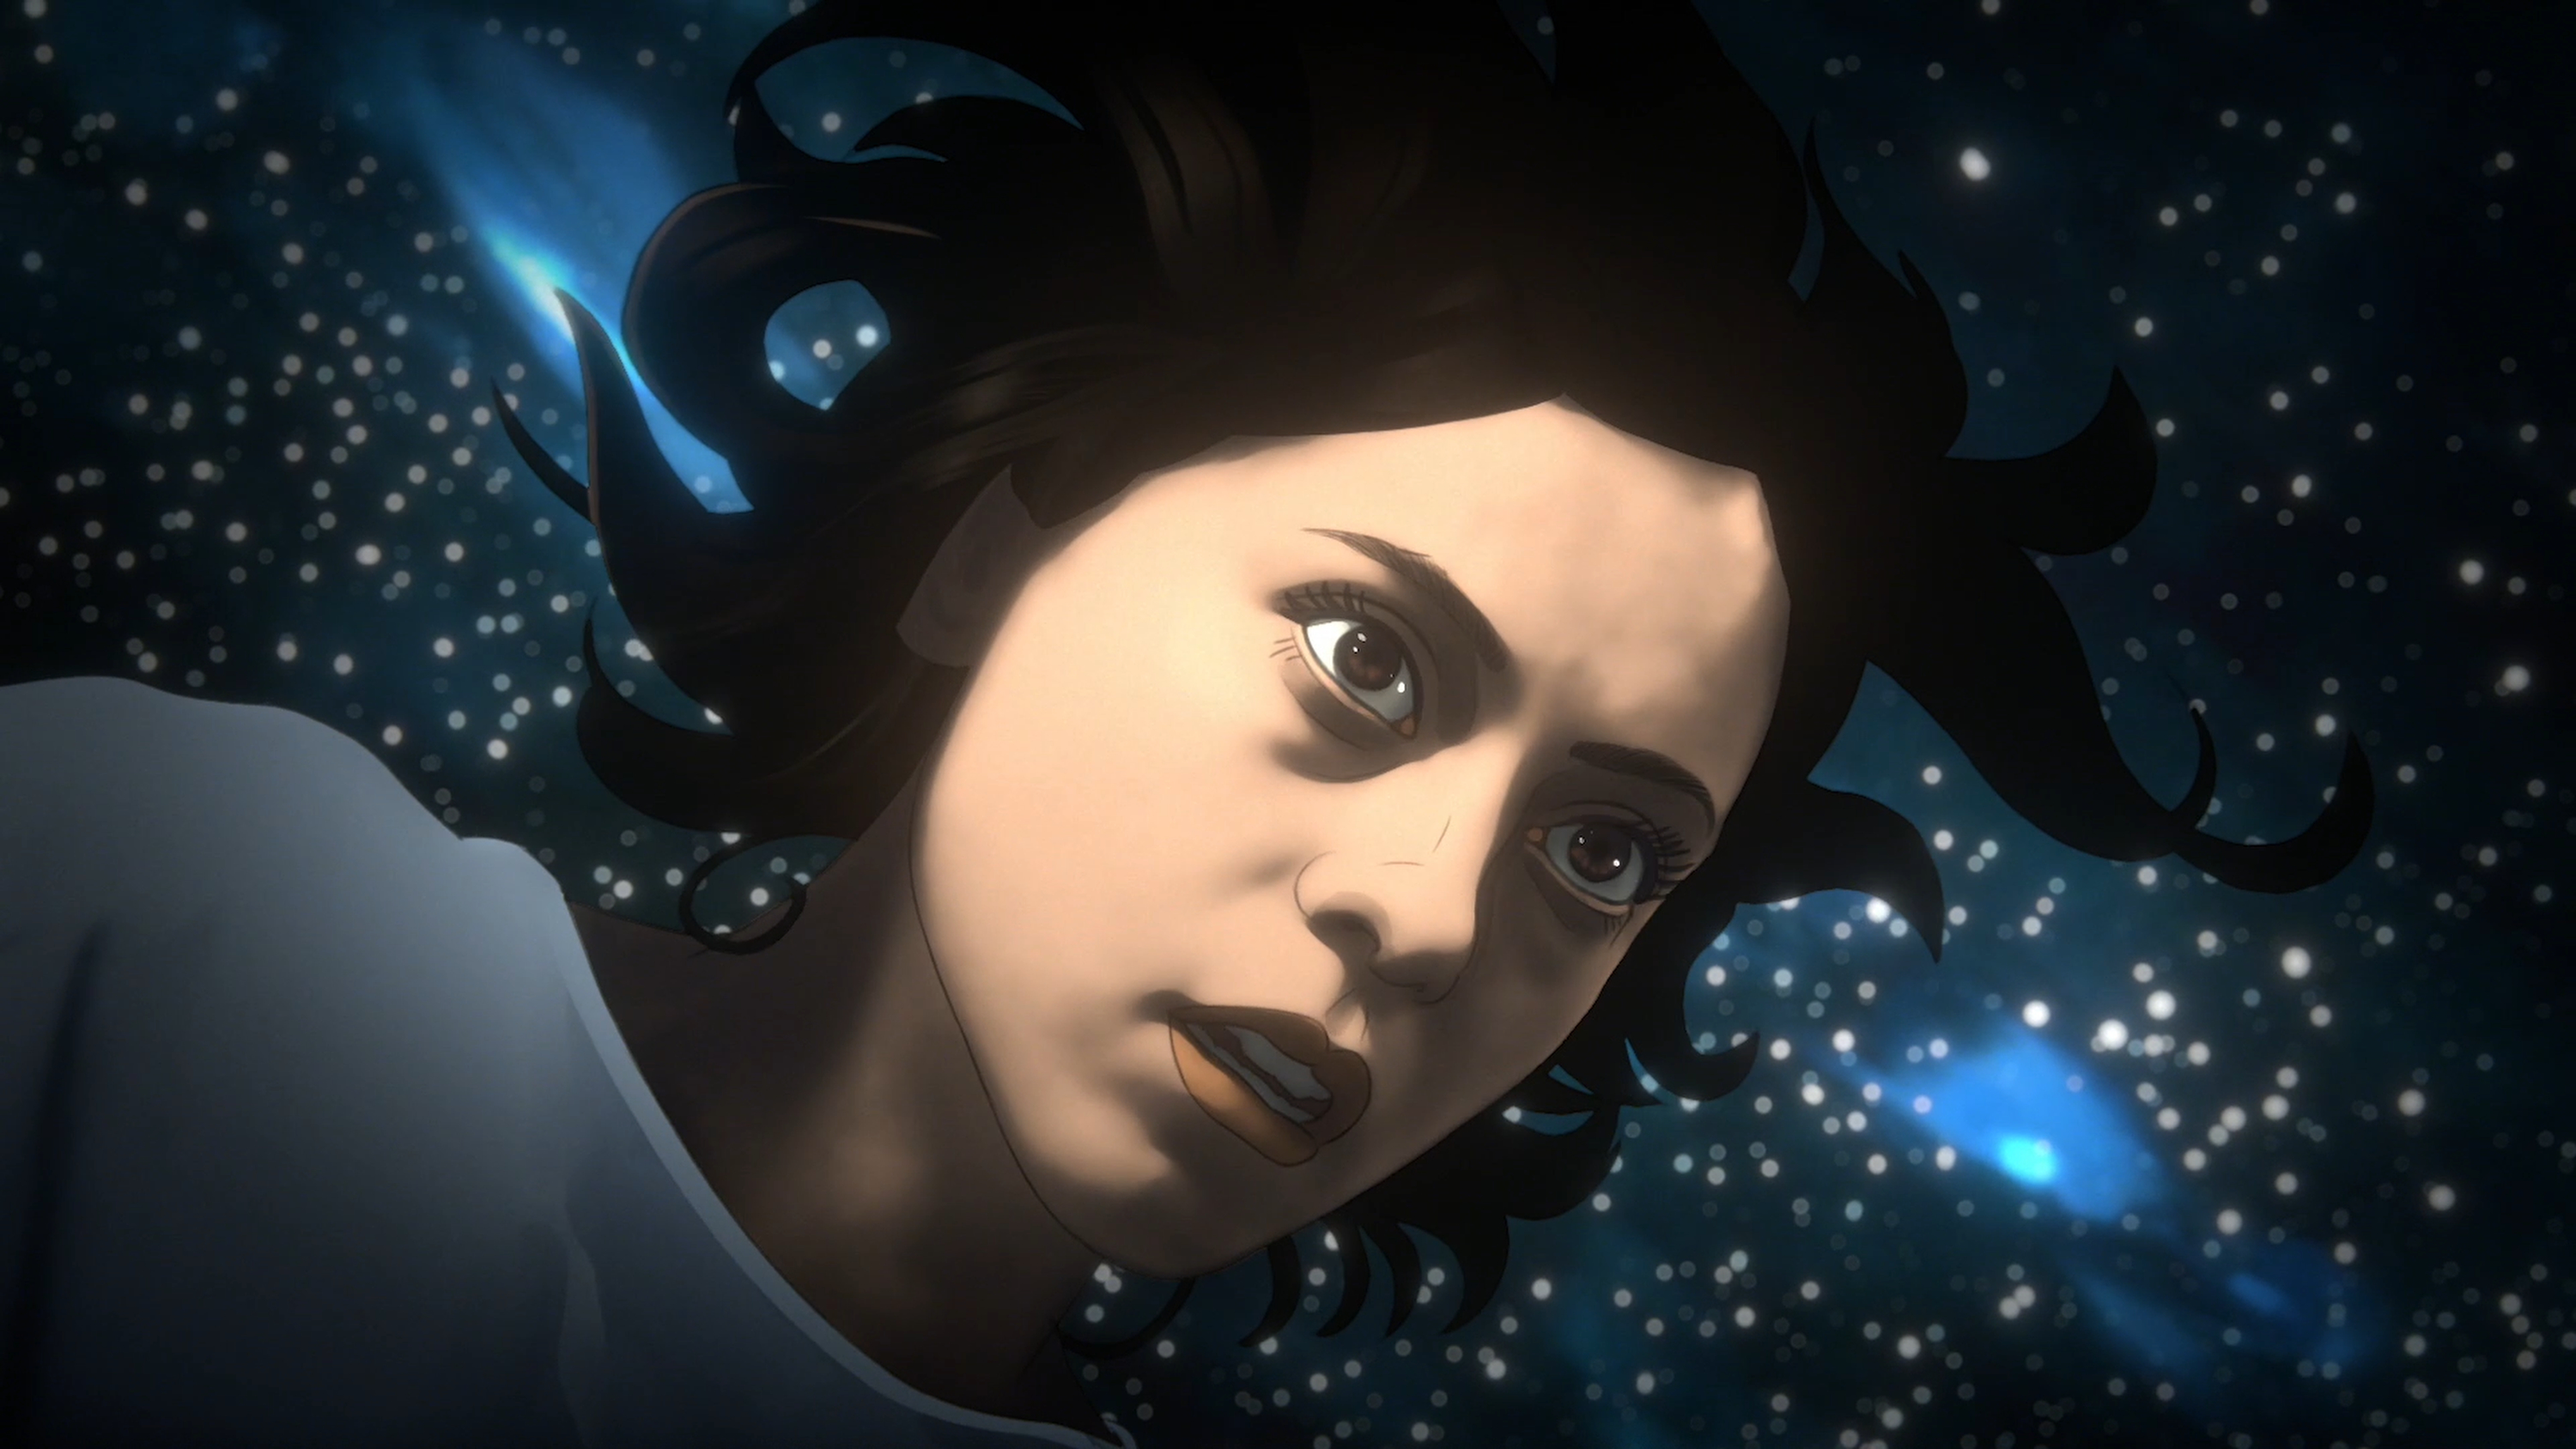 Alma floats through space as her mind reels from a crash in Undone